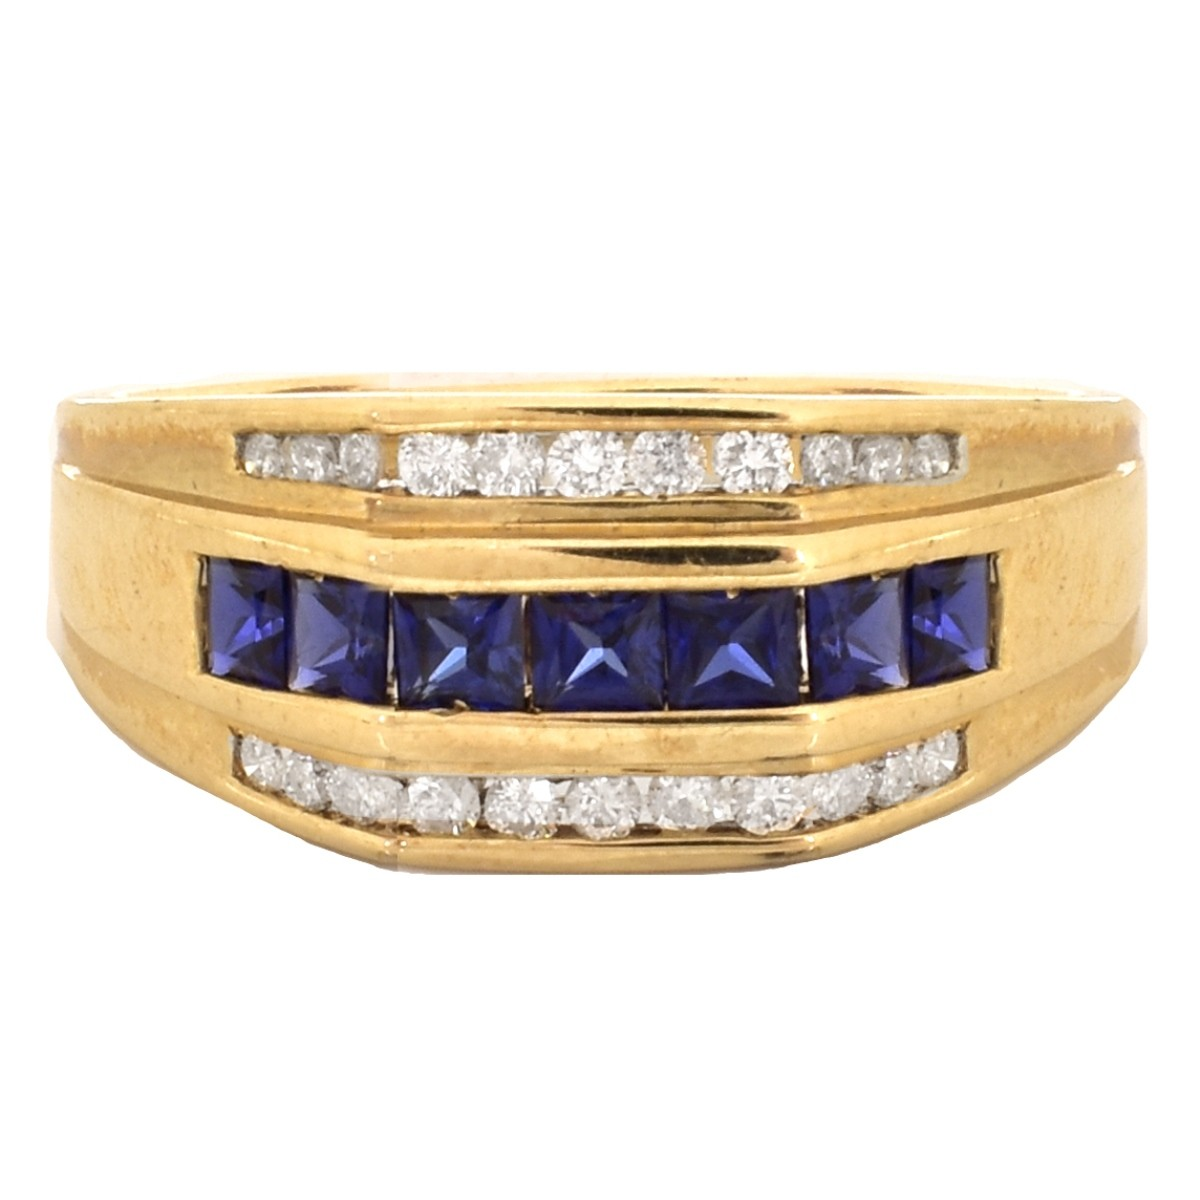 Man's Diamond, Sapphire and 10K Gold Ring